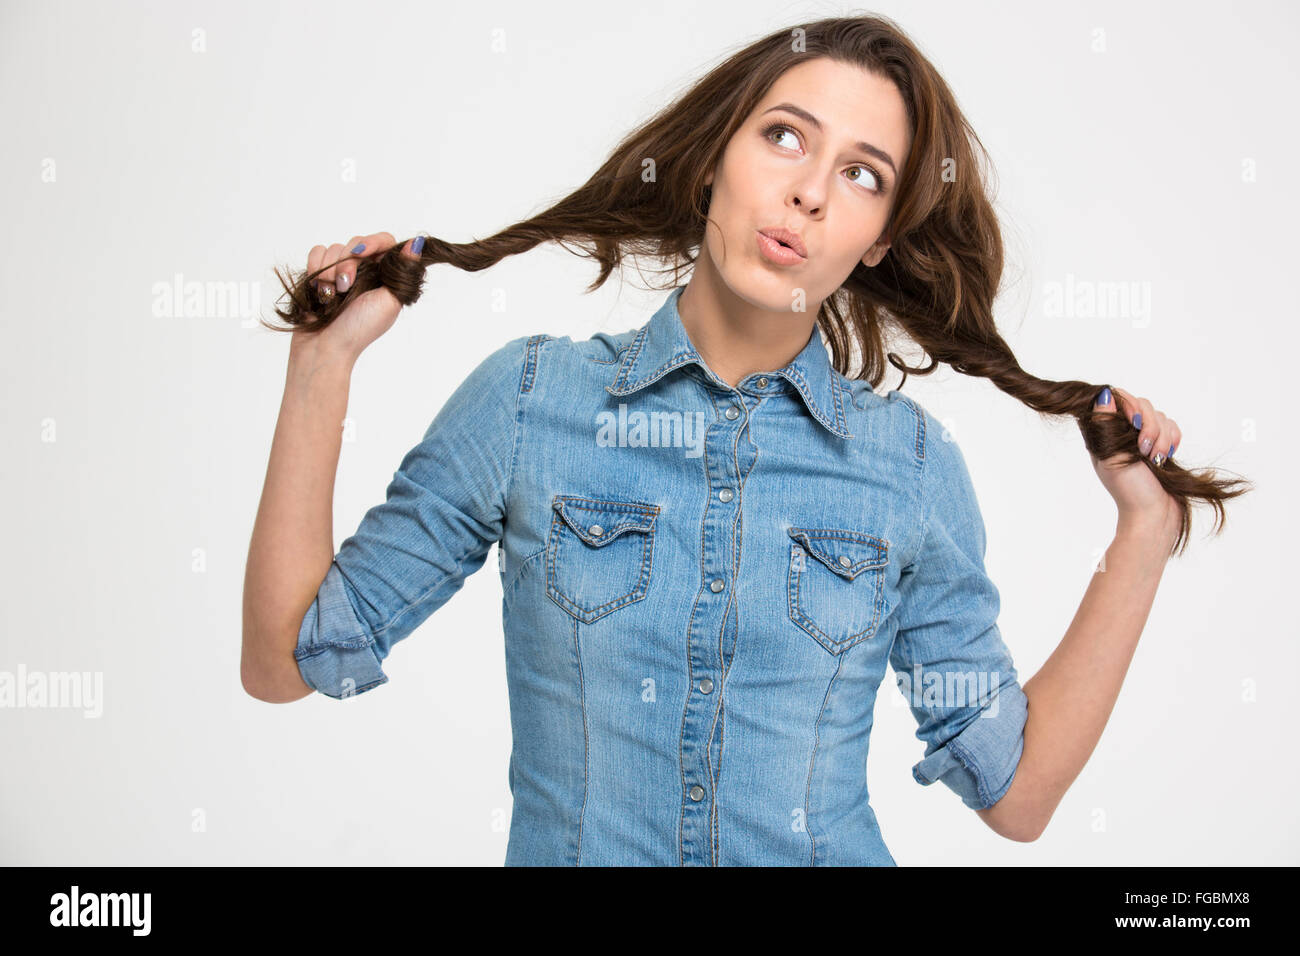 Playful pensive cute young woman grimacing and holding her hair as two braids over white background - Stock Image